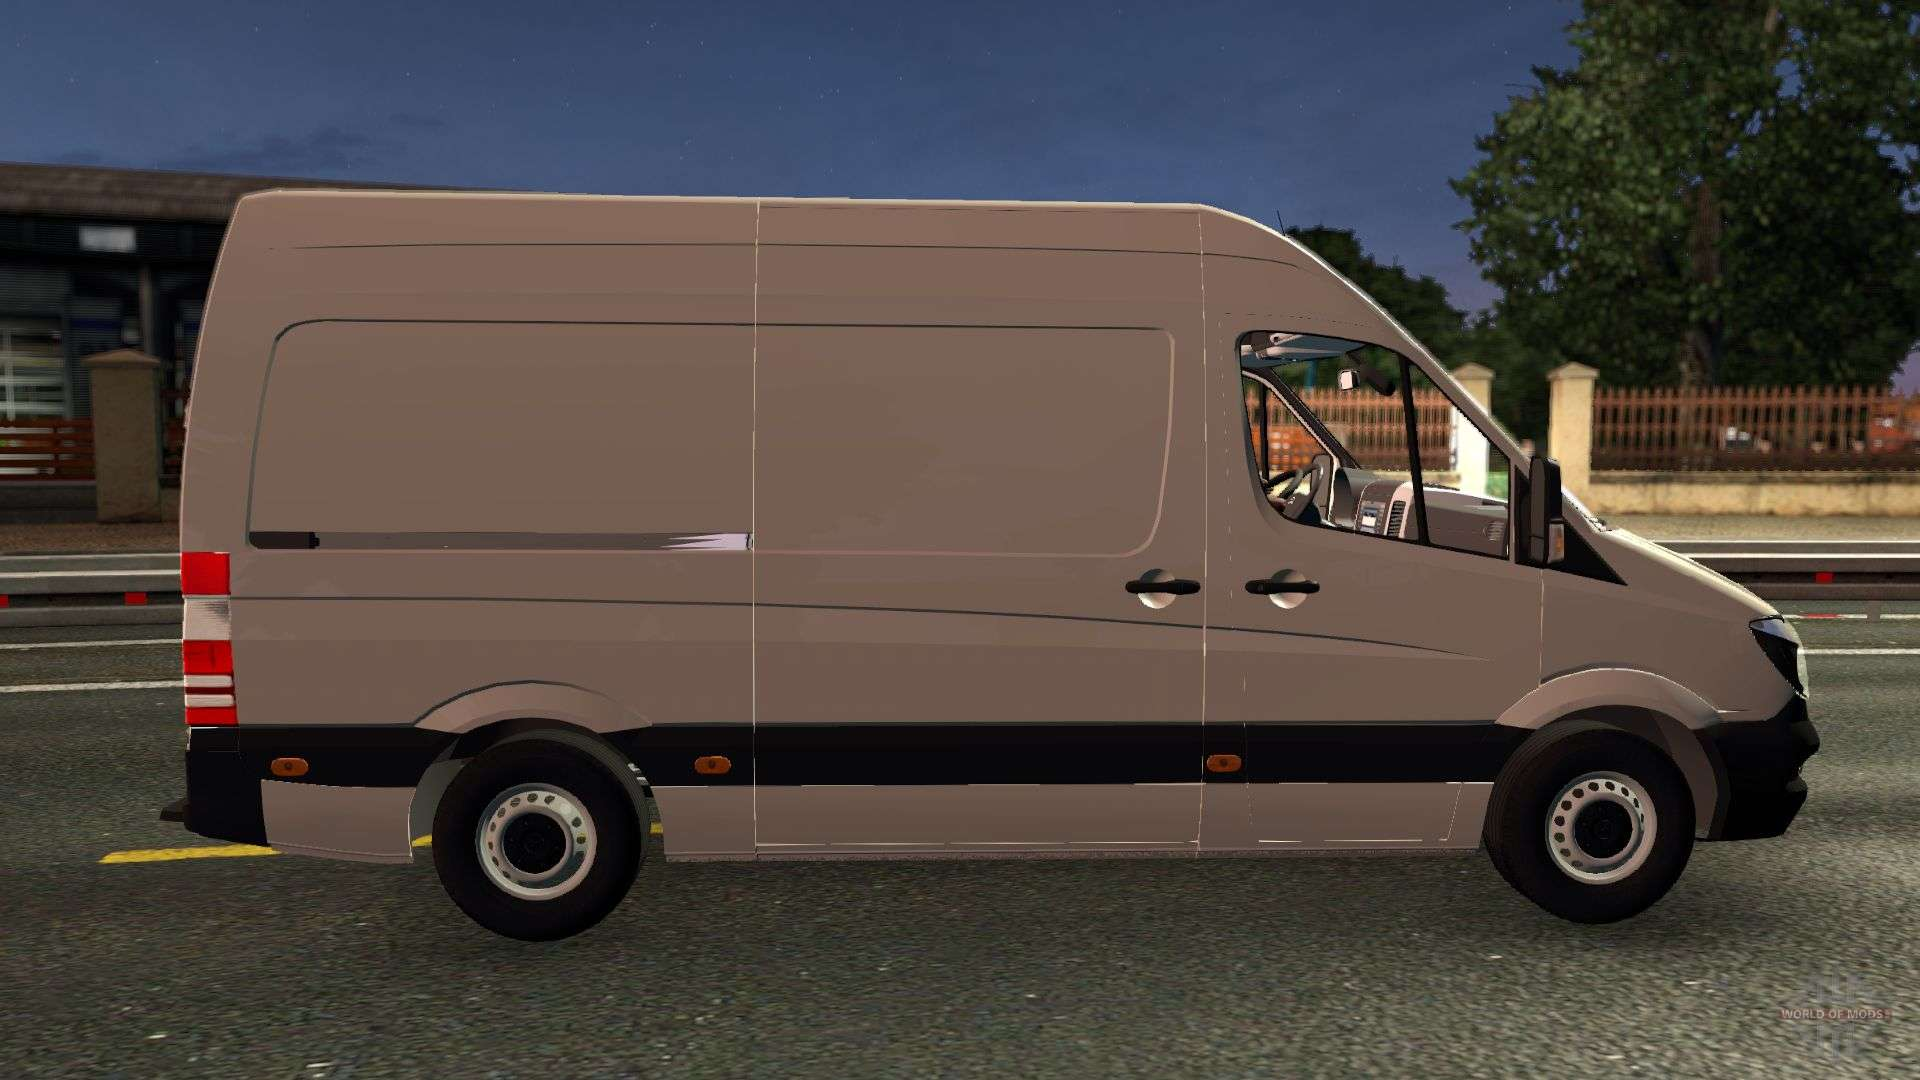 Mercedes benz sprinter cdi311 2014 pour euro truck simulator 2 for 2014 mercedes benz truck